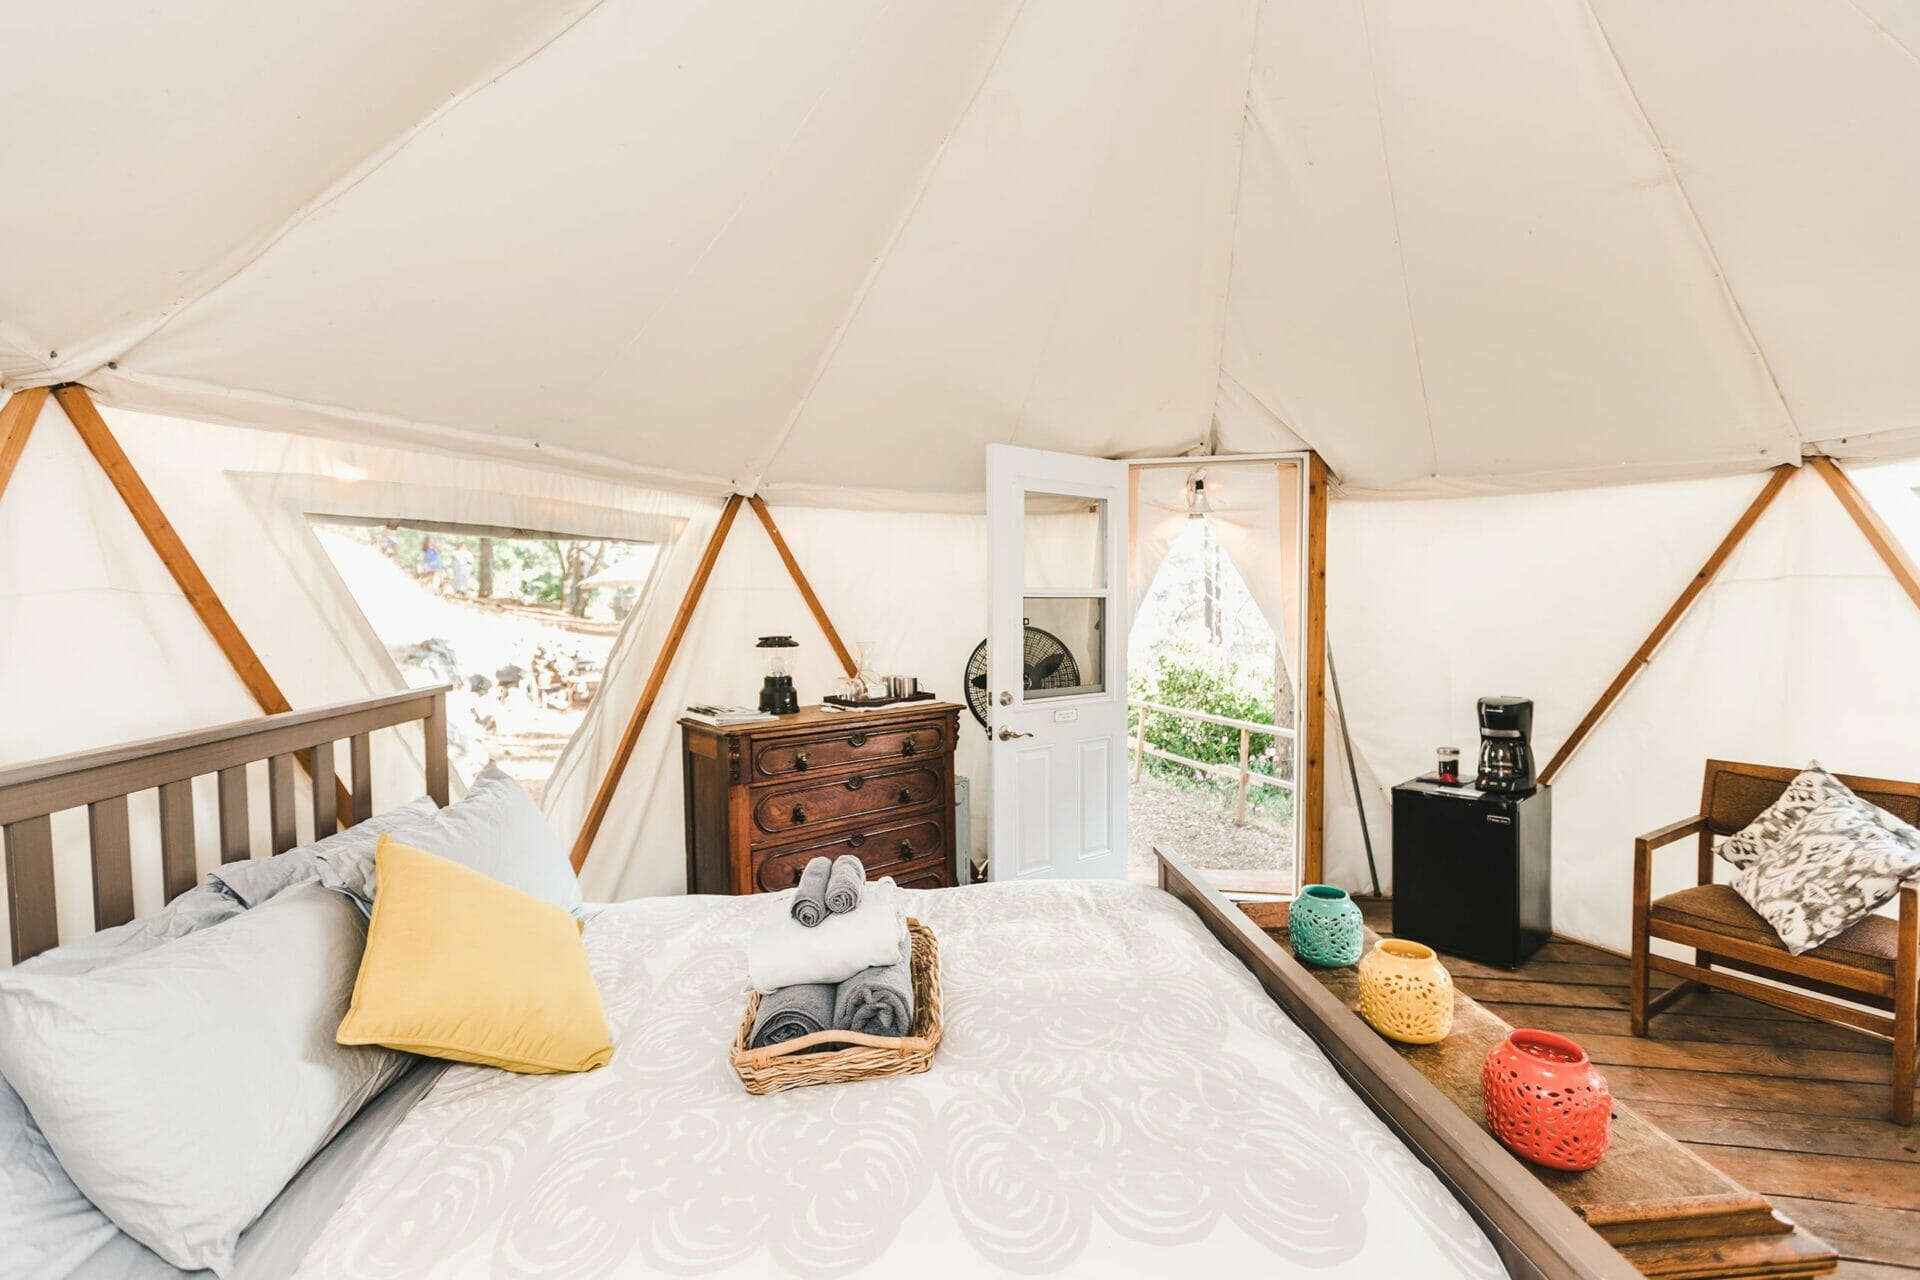 The view from the interior of Yurt Sunset